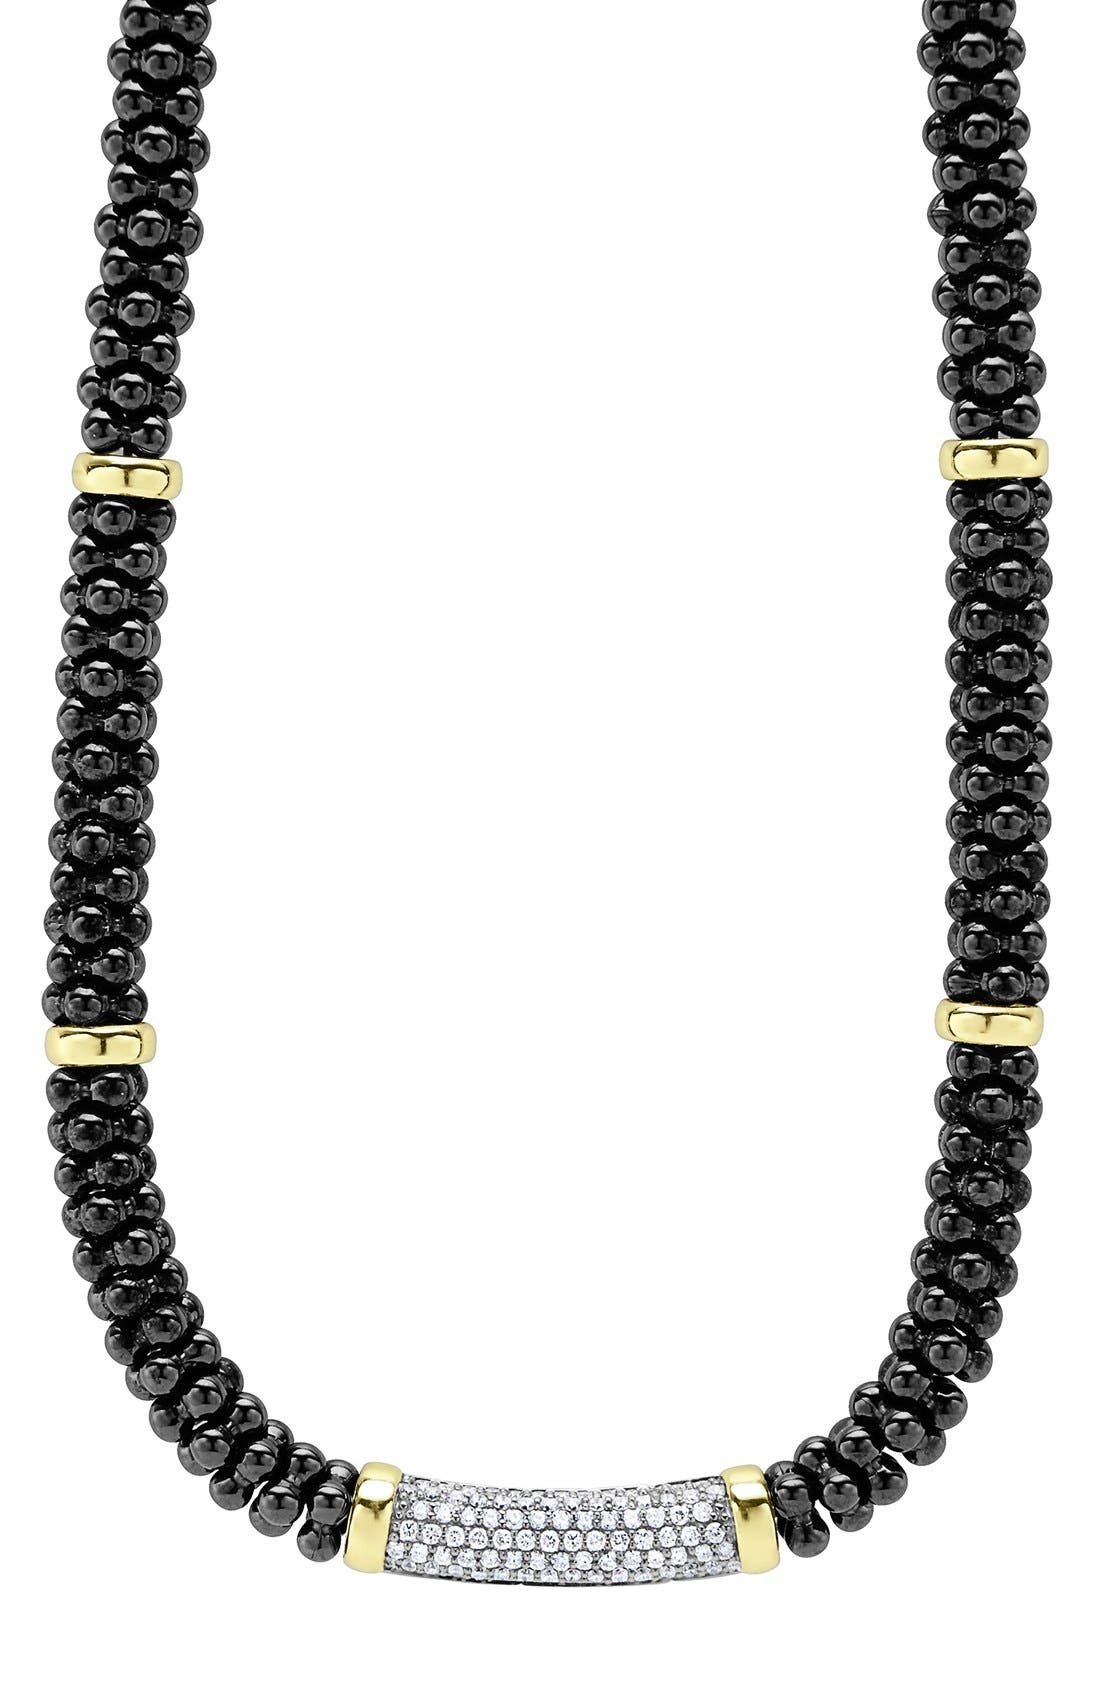 LAGOS 'Black Caviar' 7mm Beaded Diamond Bar Necklace